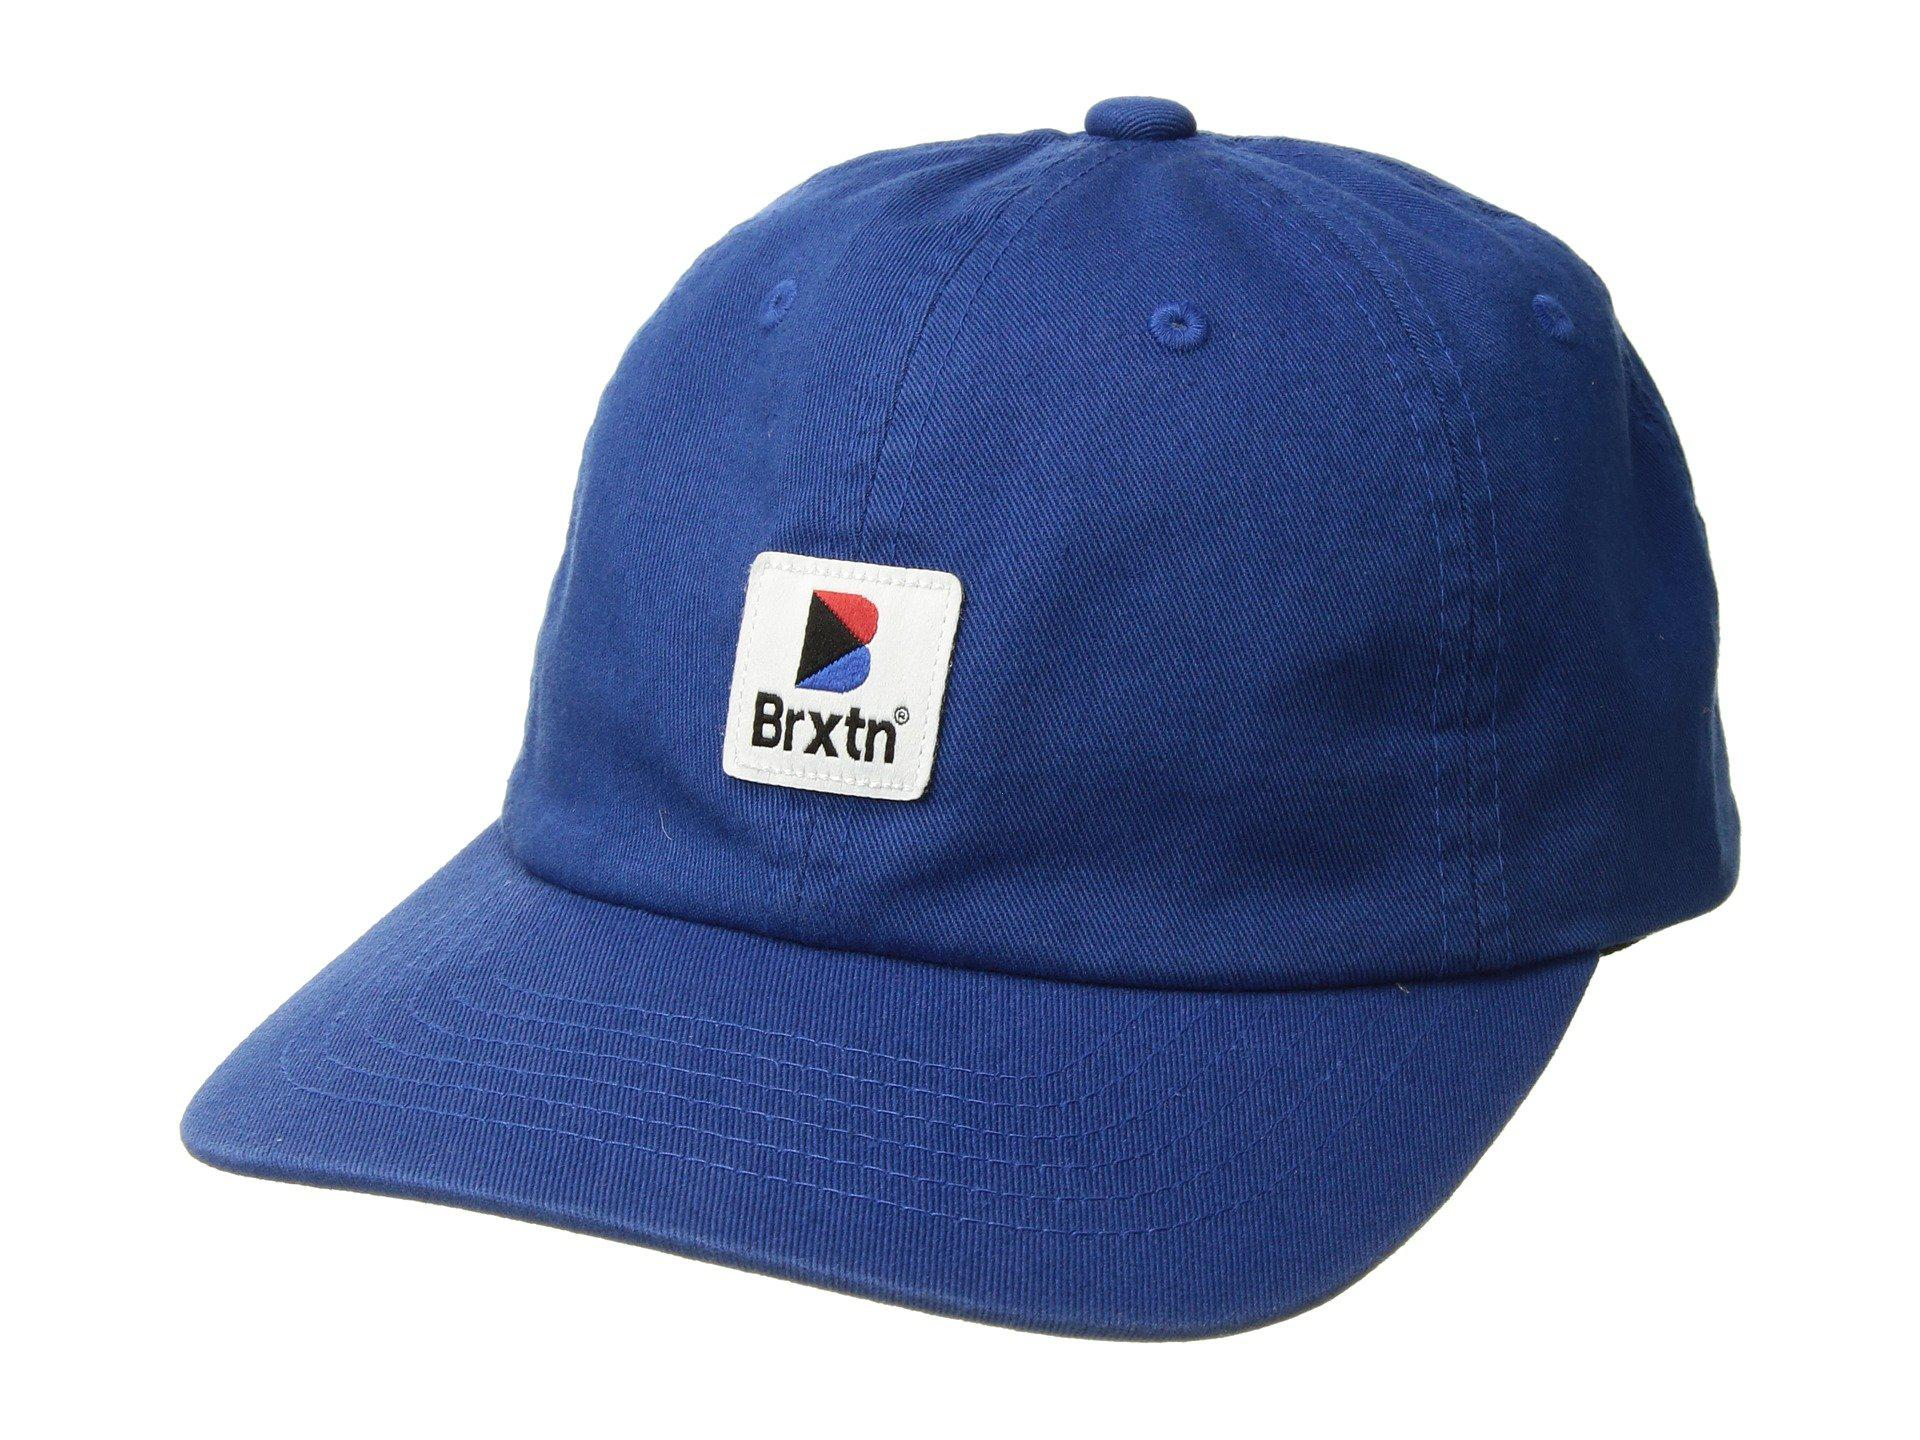 Lyst - Brixton Stowell Mp Cap in Blue for Men 9d11188e336d